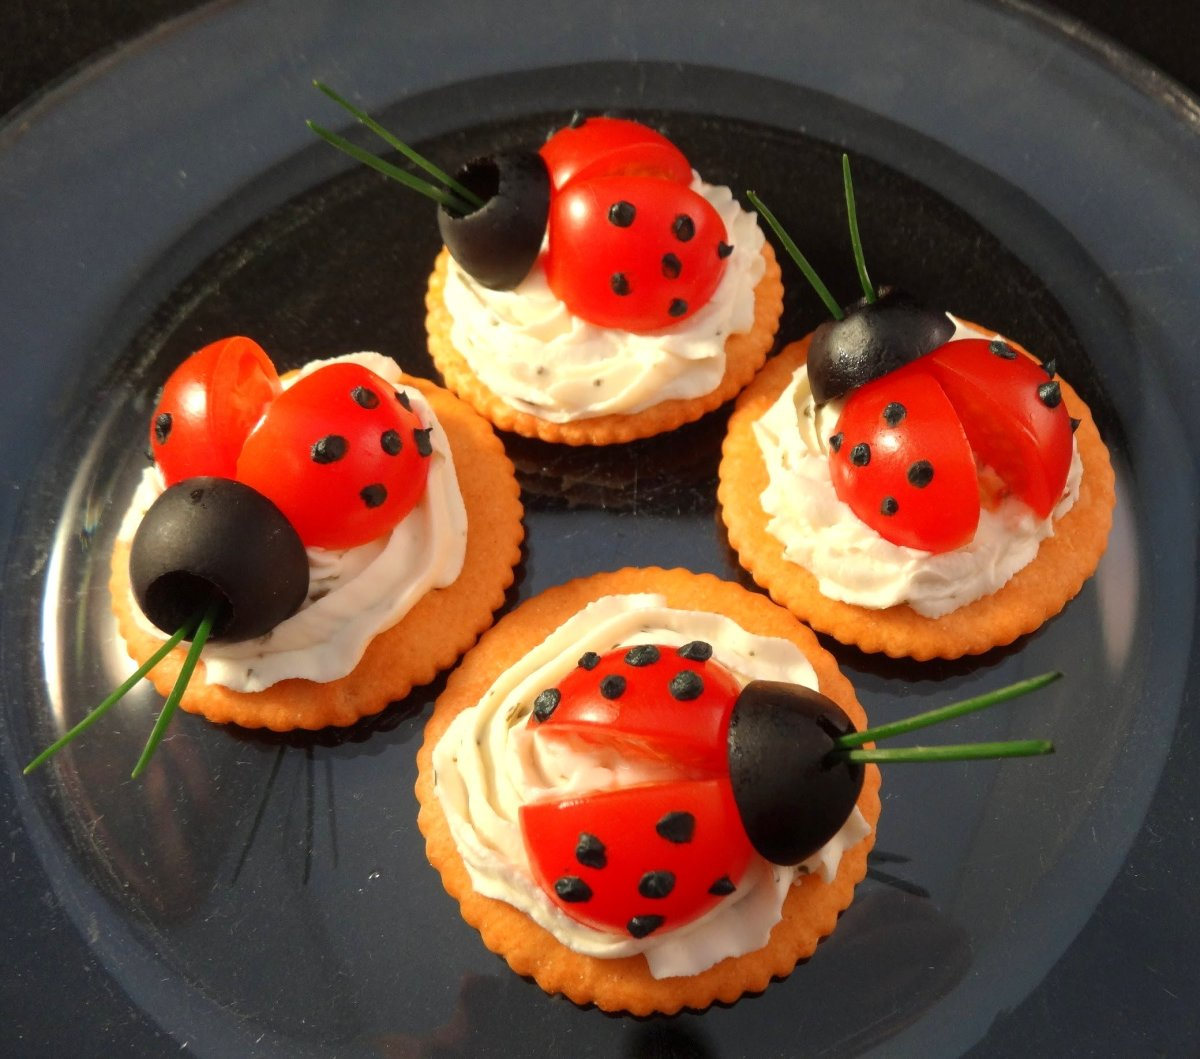 Top crackers with delightful ladybugs to impress your guests on Easter.